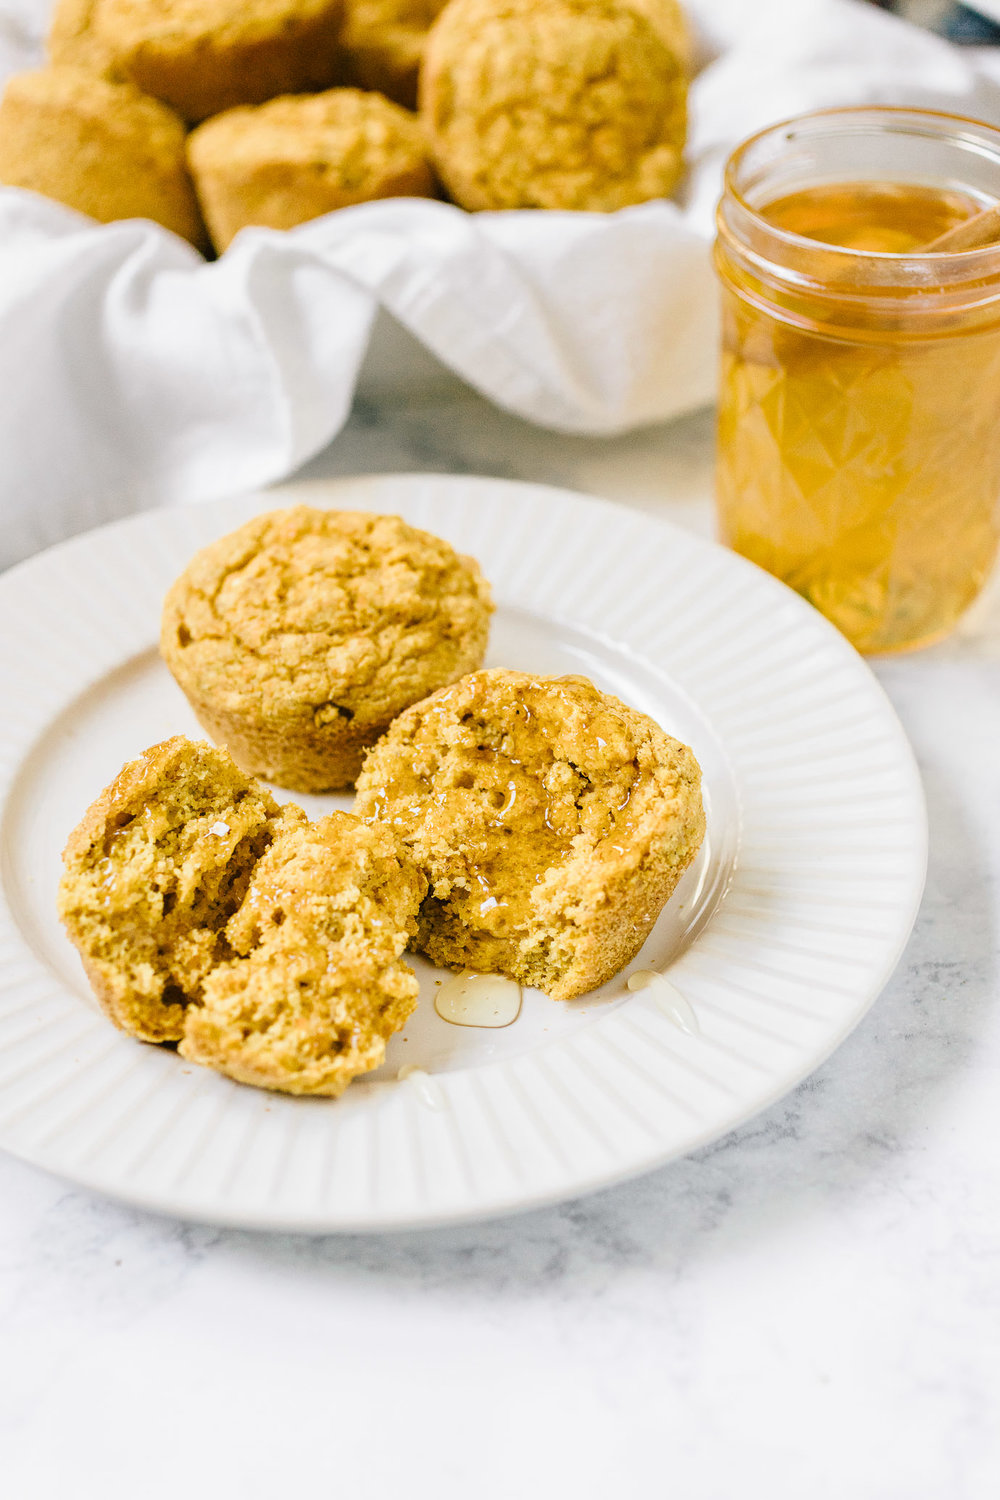 Vegan Maple Cornbread Muffins lightly sweetened with maple syrup. Gluten-free, Dairy-free.